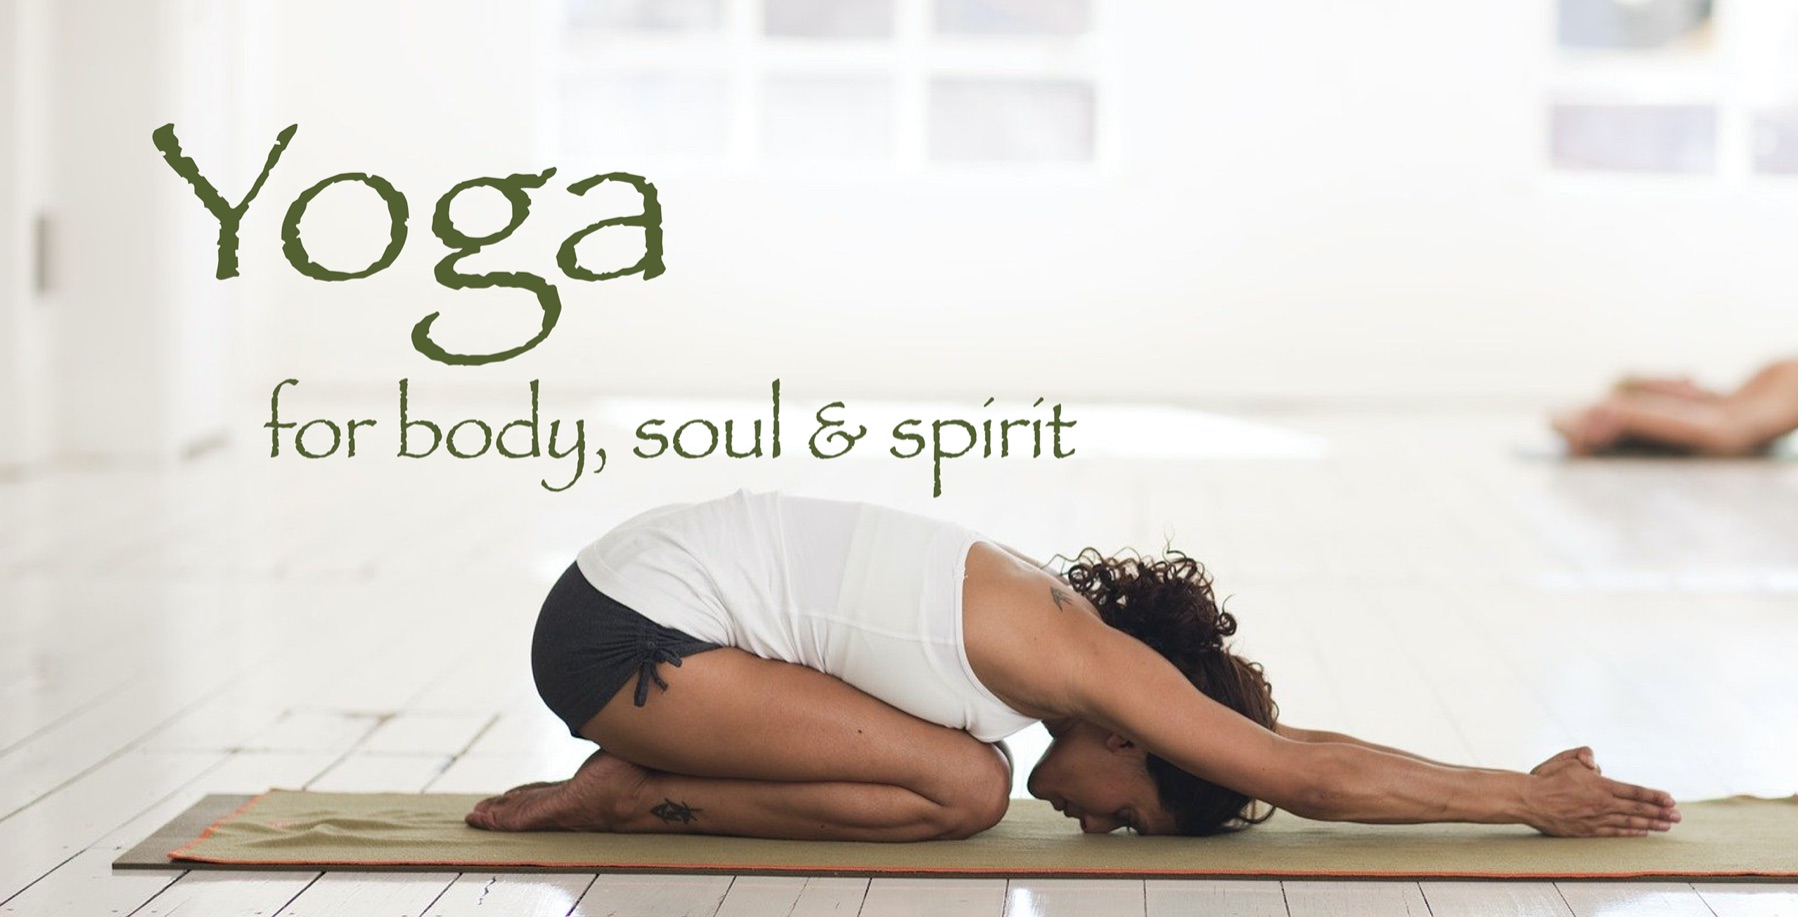 yoga for body, soul & spirit